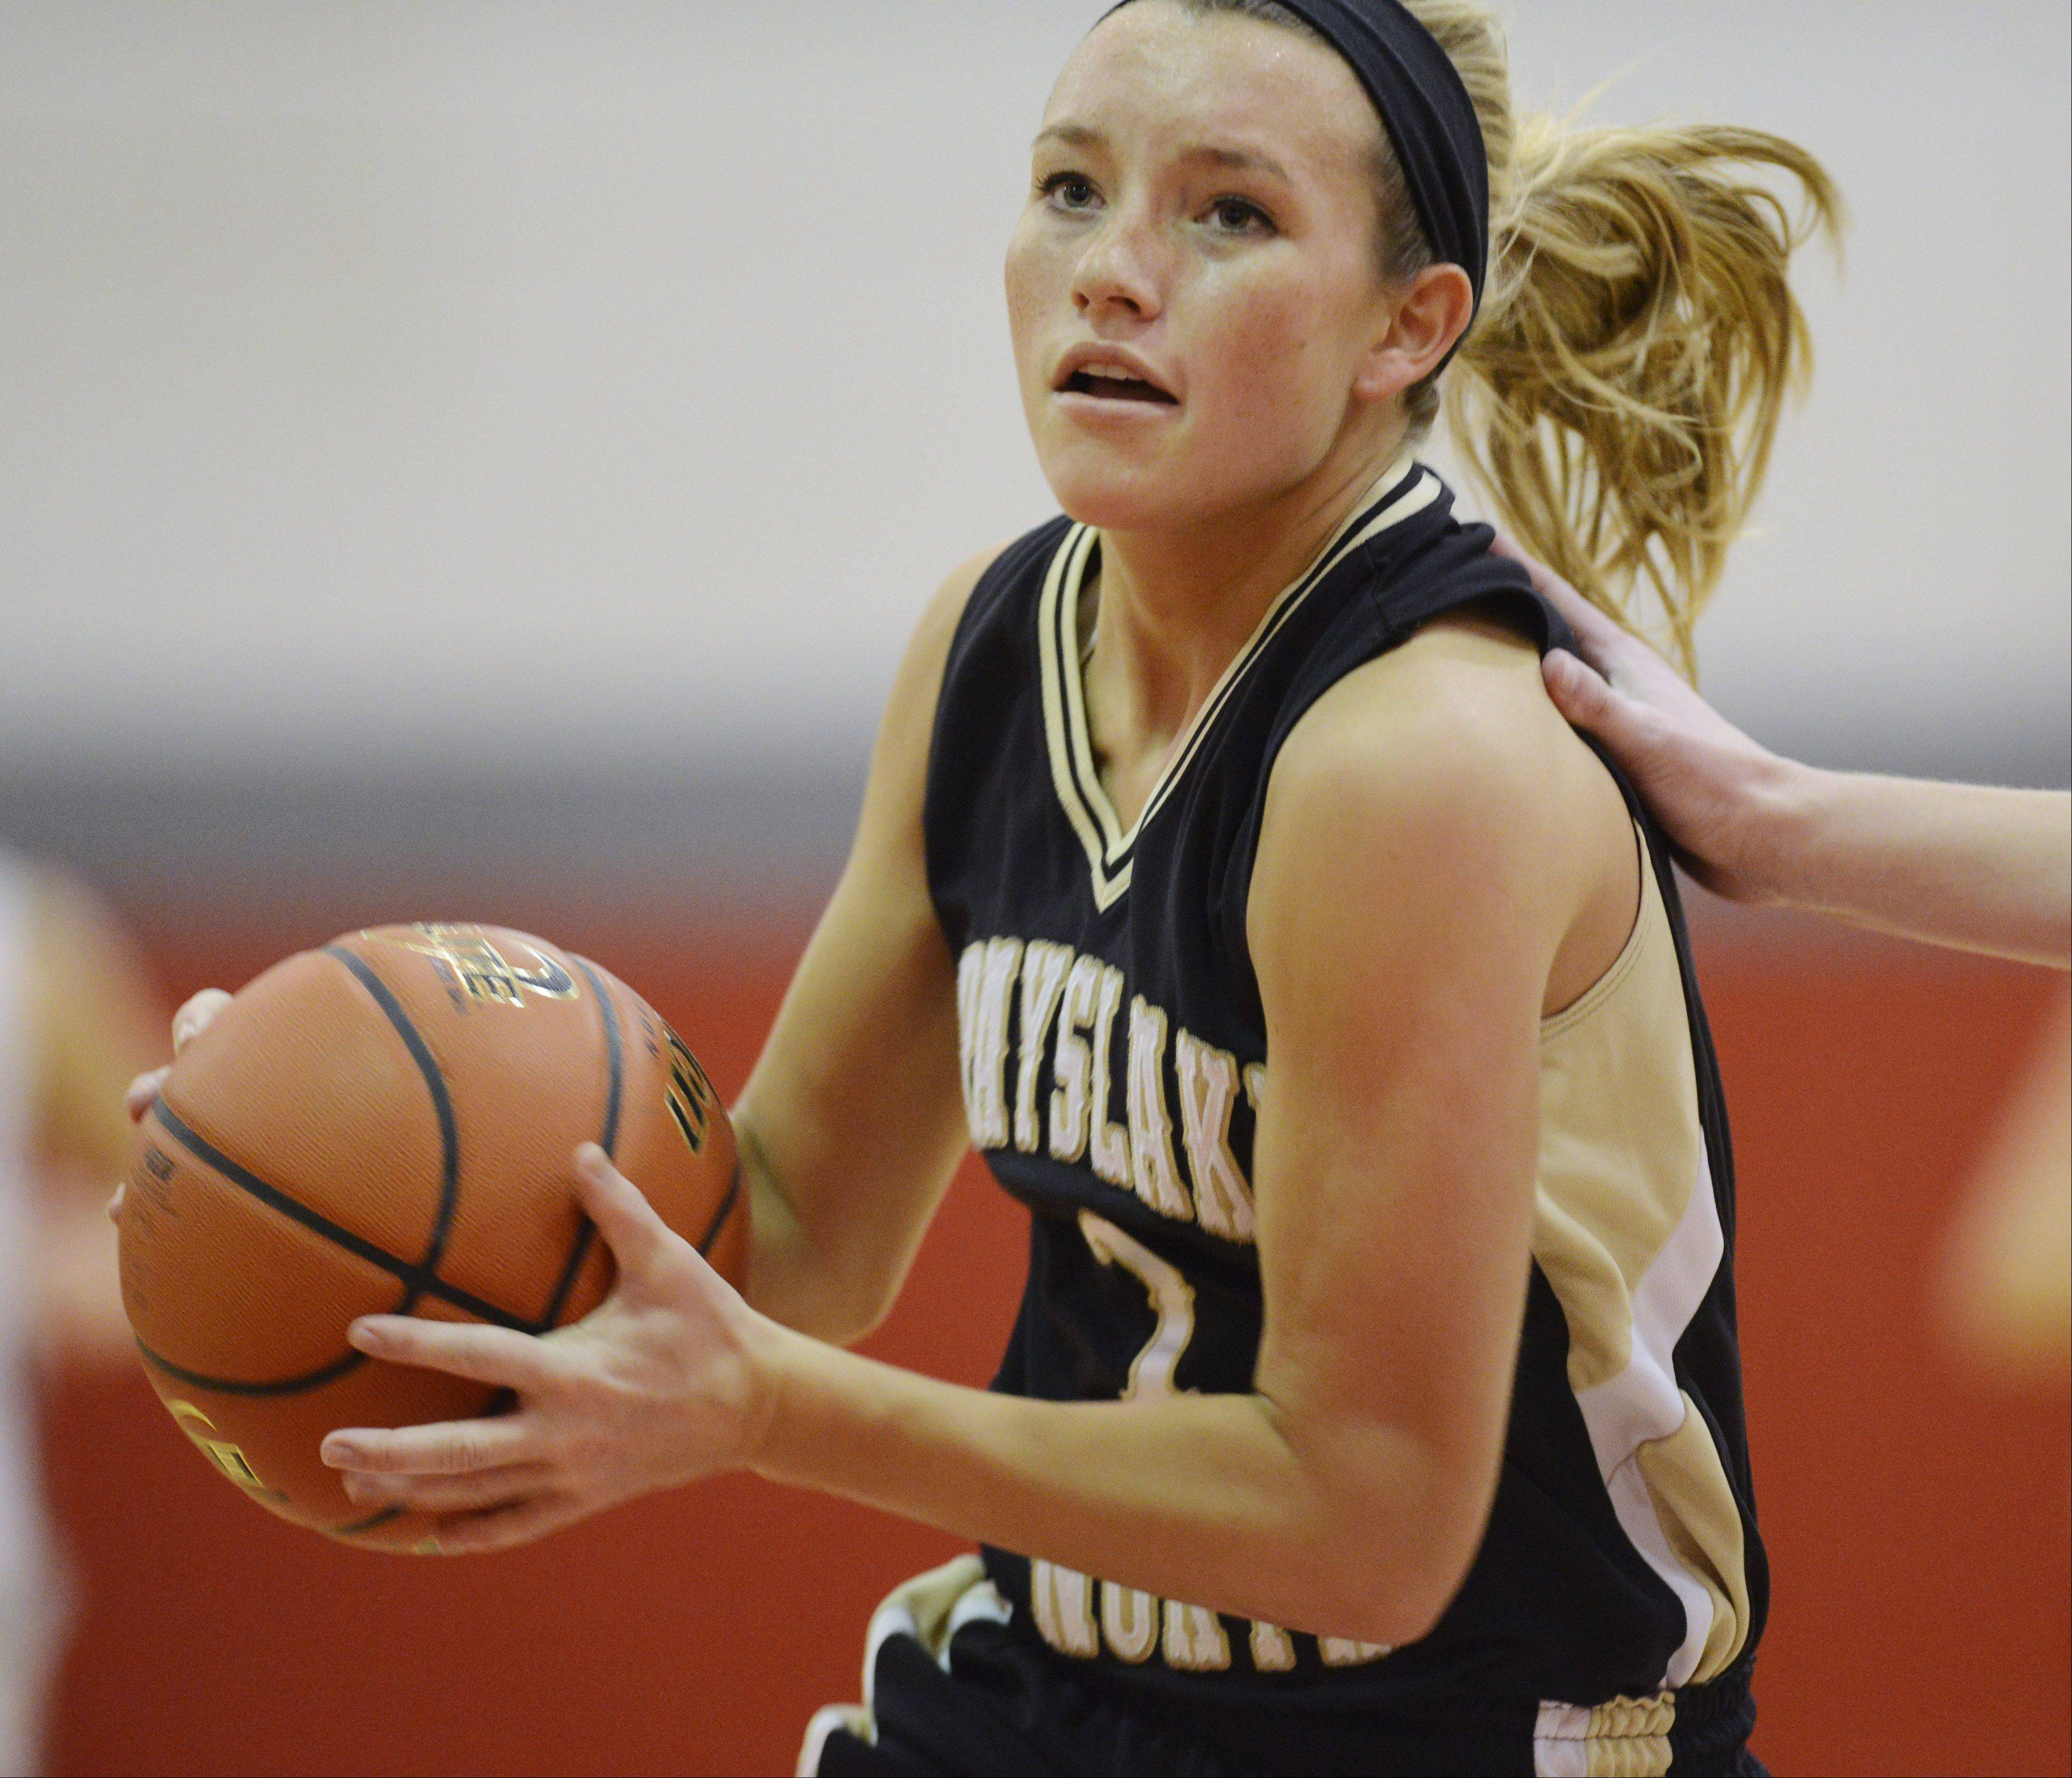 Jordyn Bowen of Grayslake North drives to the basket despite contact from a defender during Friday's game at Mundelein.